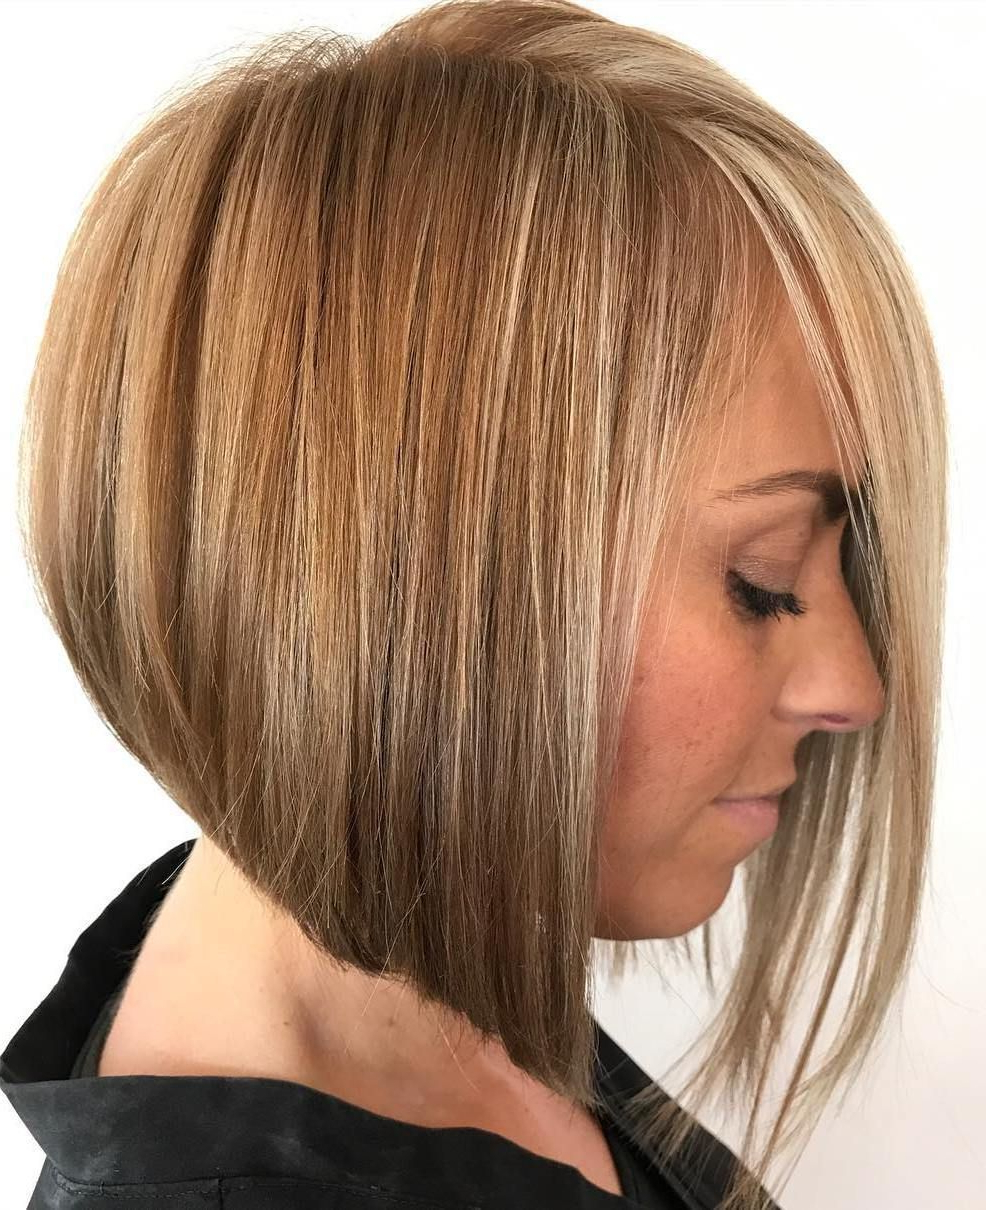 70 Winning Looks With Bob Haircuts For Fine Hair (View 2 of 20)